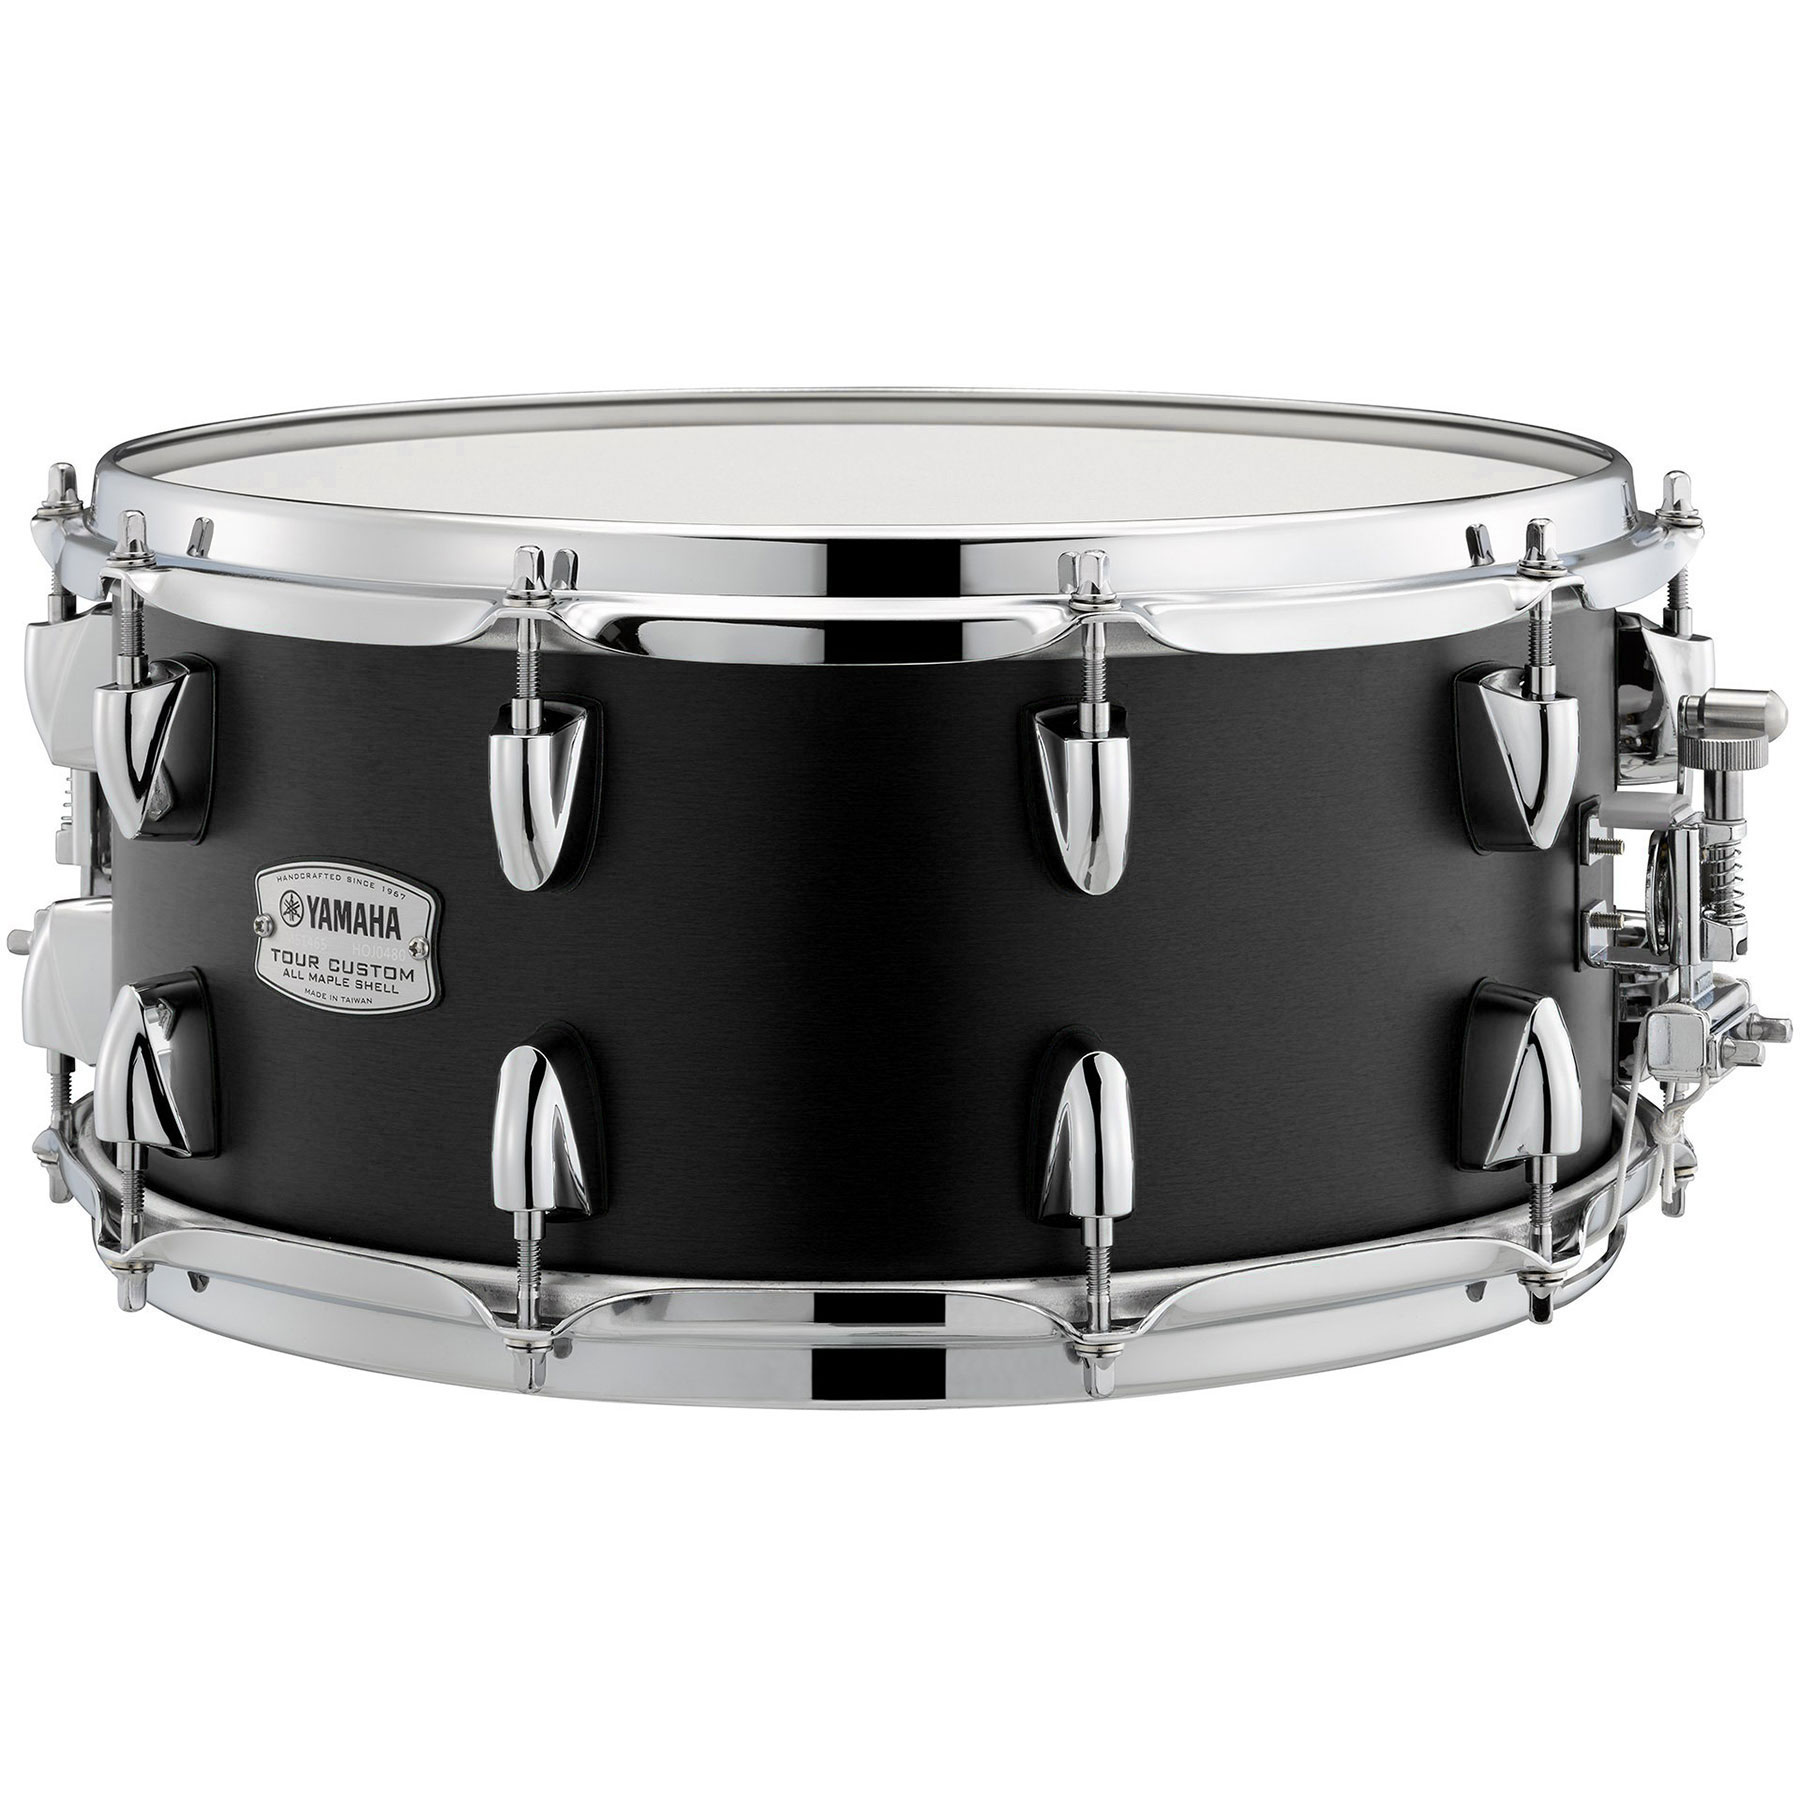 "Yamaha 14"" x 6.5"" Tour Custom Maple Snare Drum"